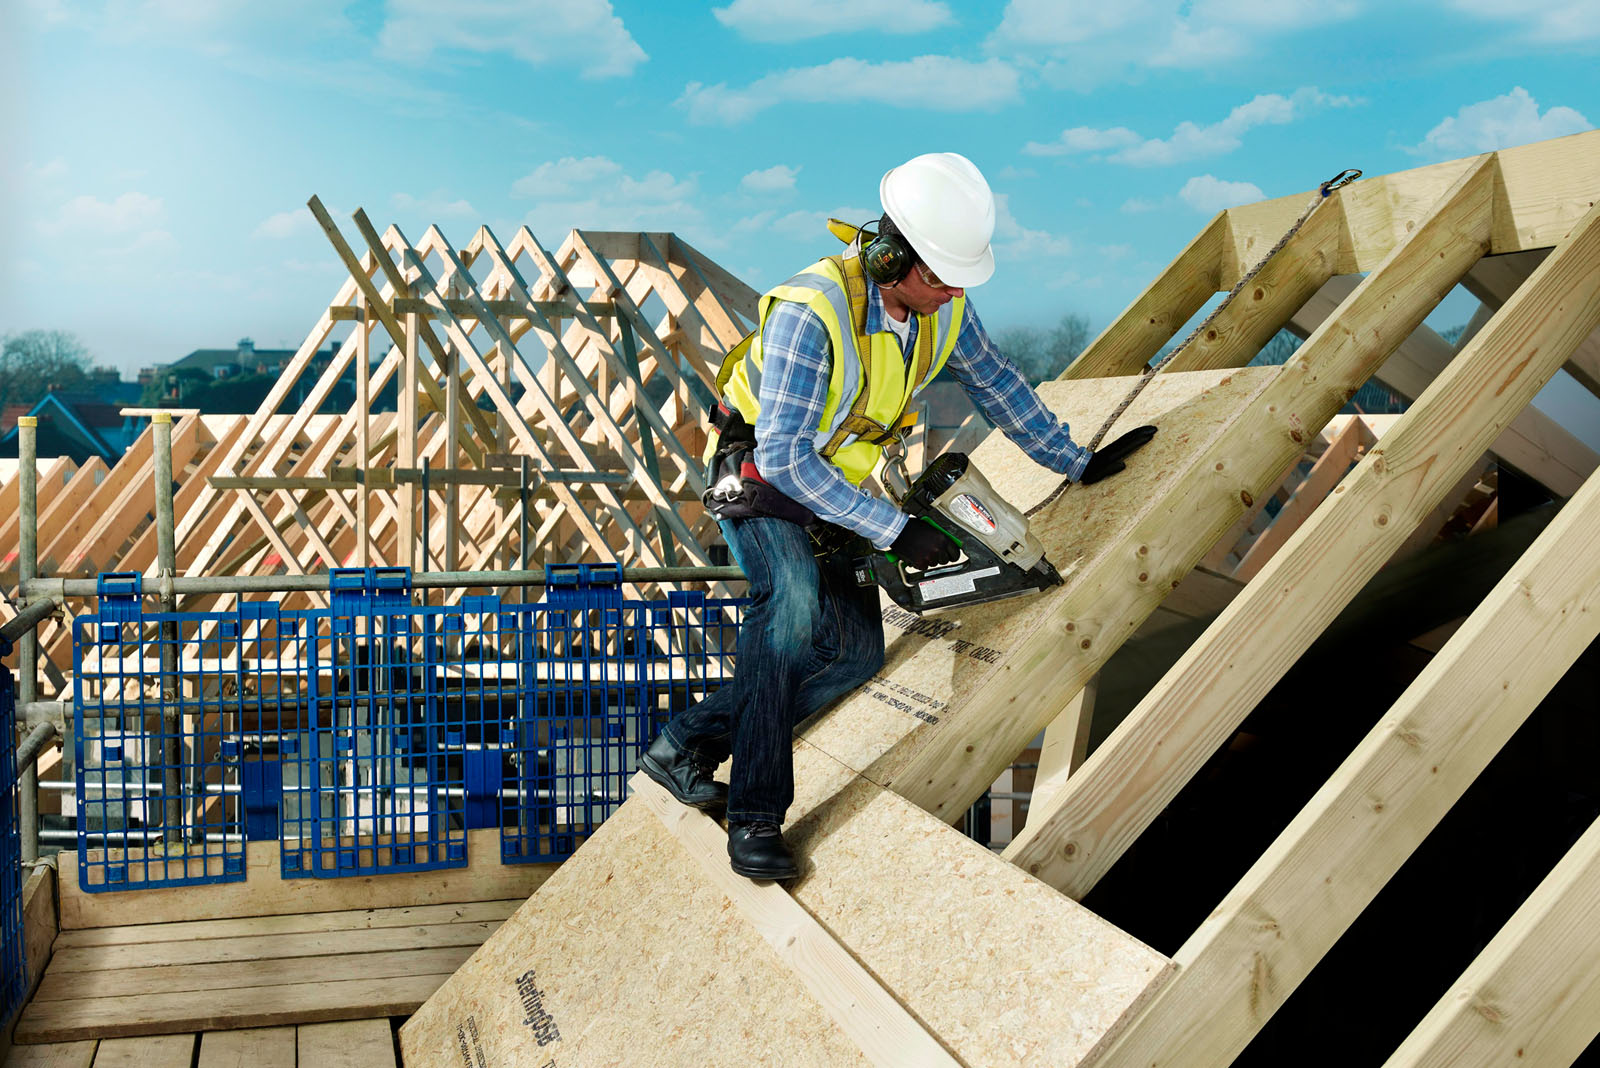 Norbord's range of solutions for the timber frame sector